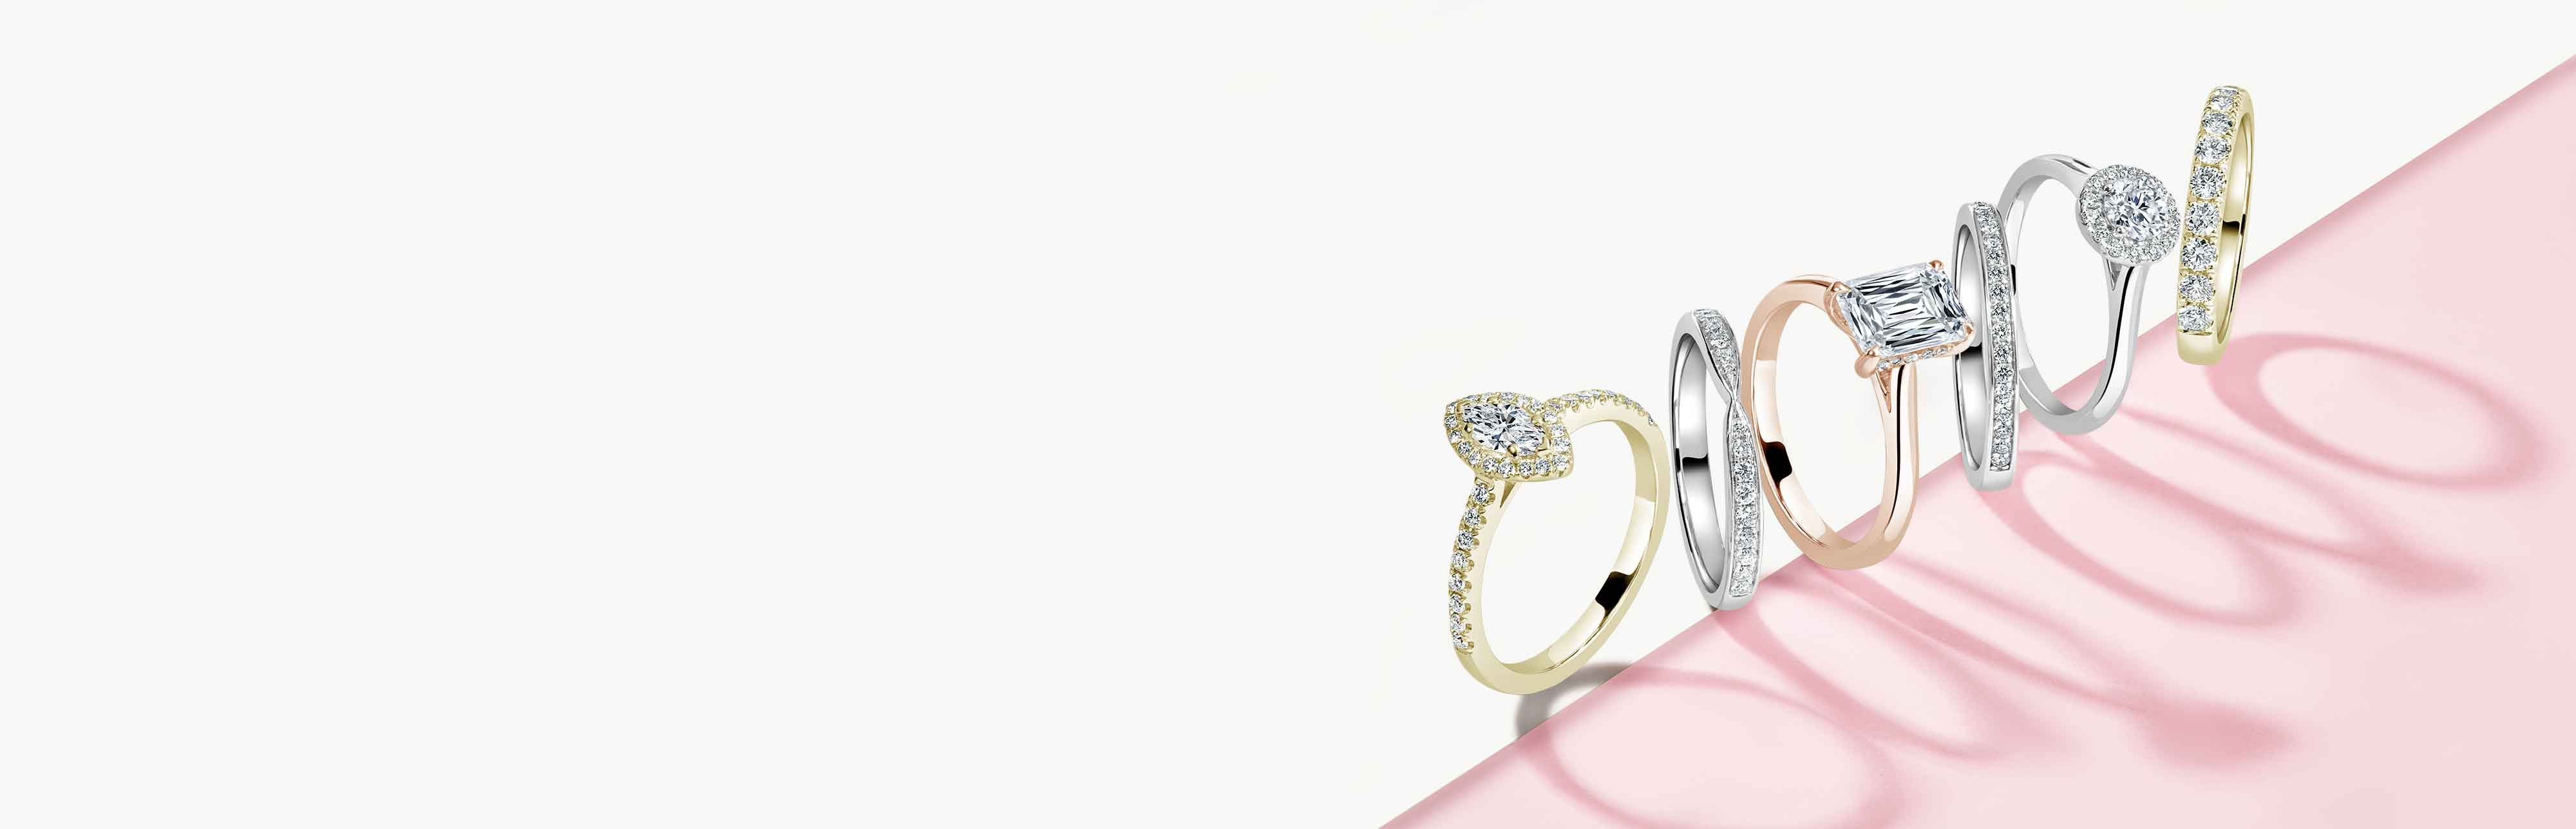 Radiant Cut Solitaire Engagement Rings - Steven Stone